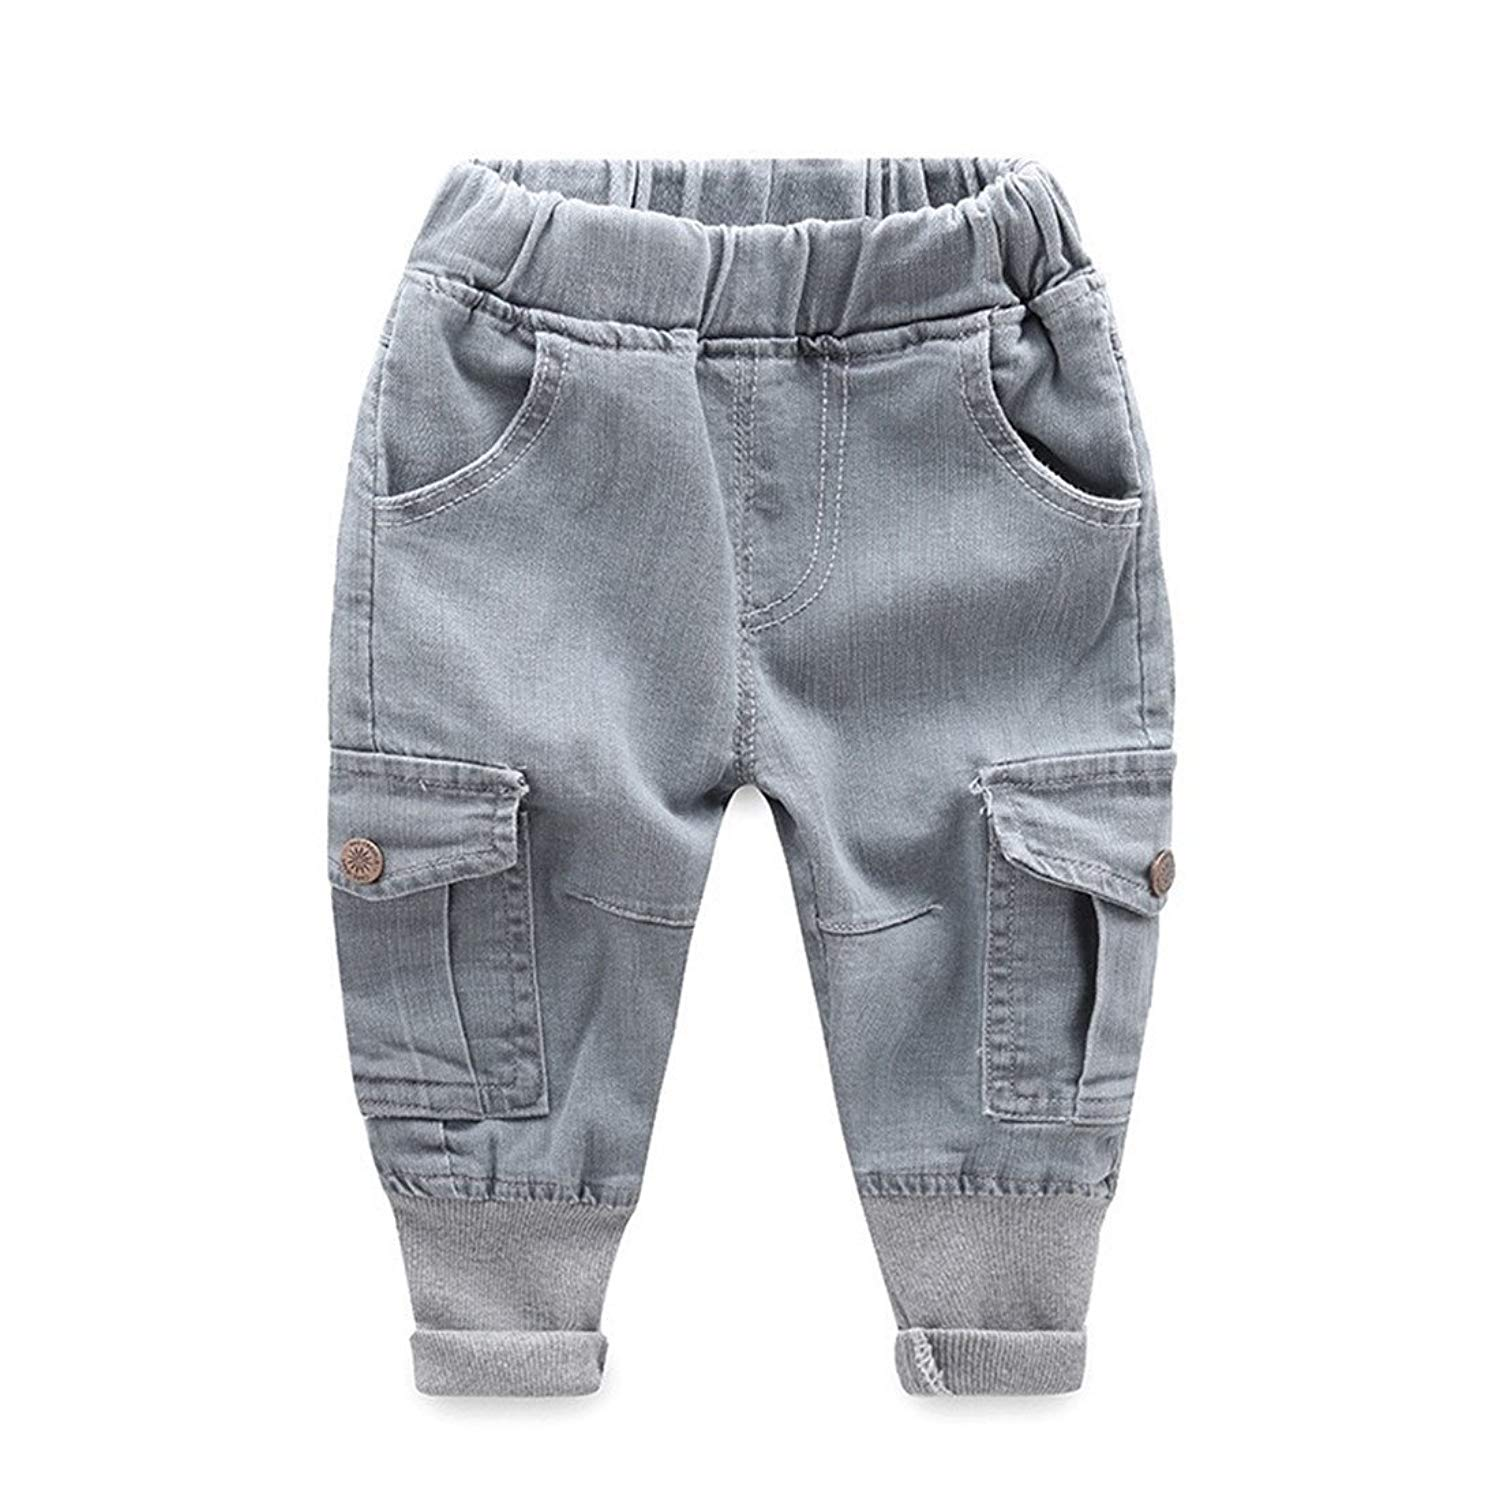 243feb7240 Get Quotations · Baby Boys Girls Denim Cargo Pants Casual Cowboy Denim  Harem Pants